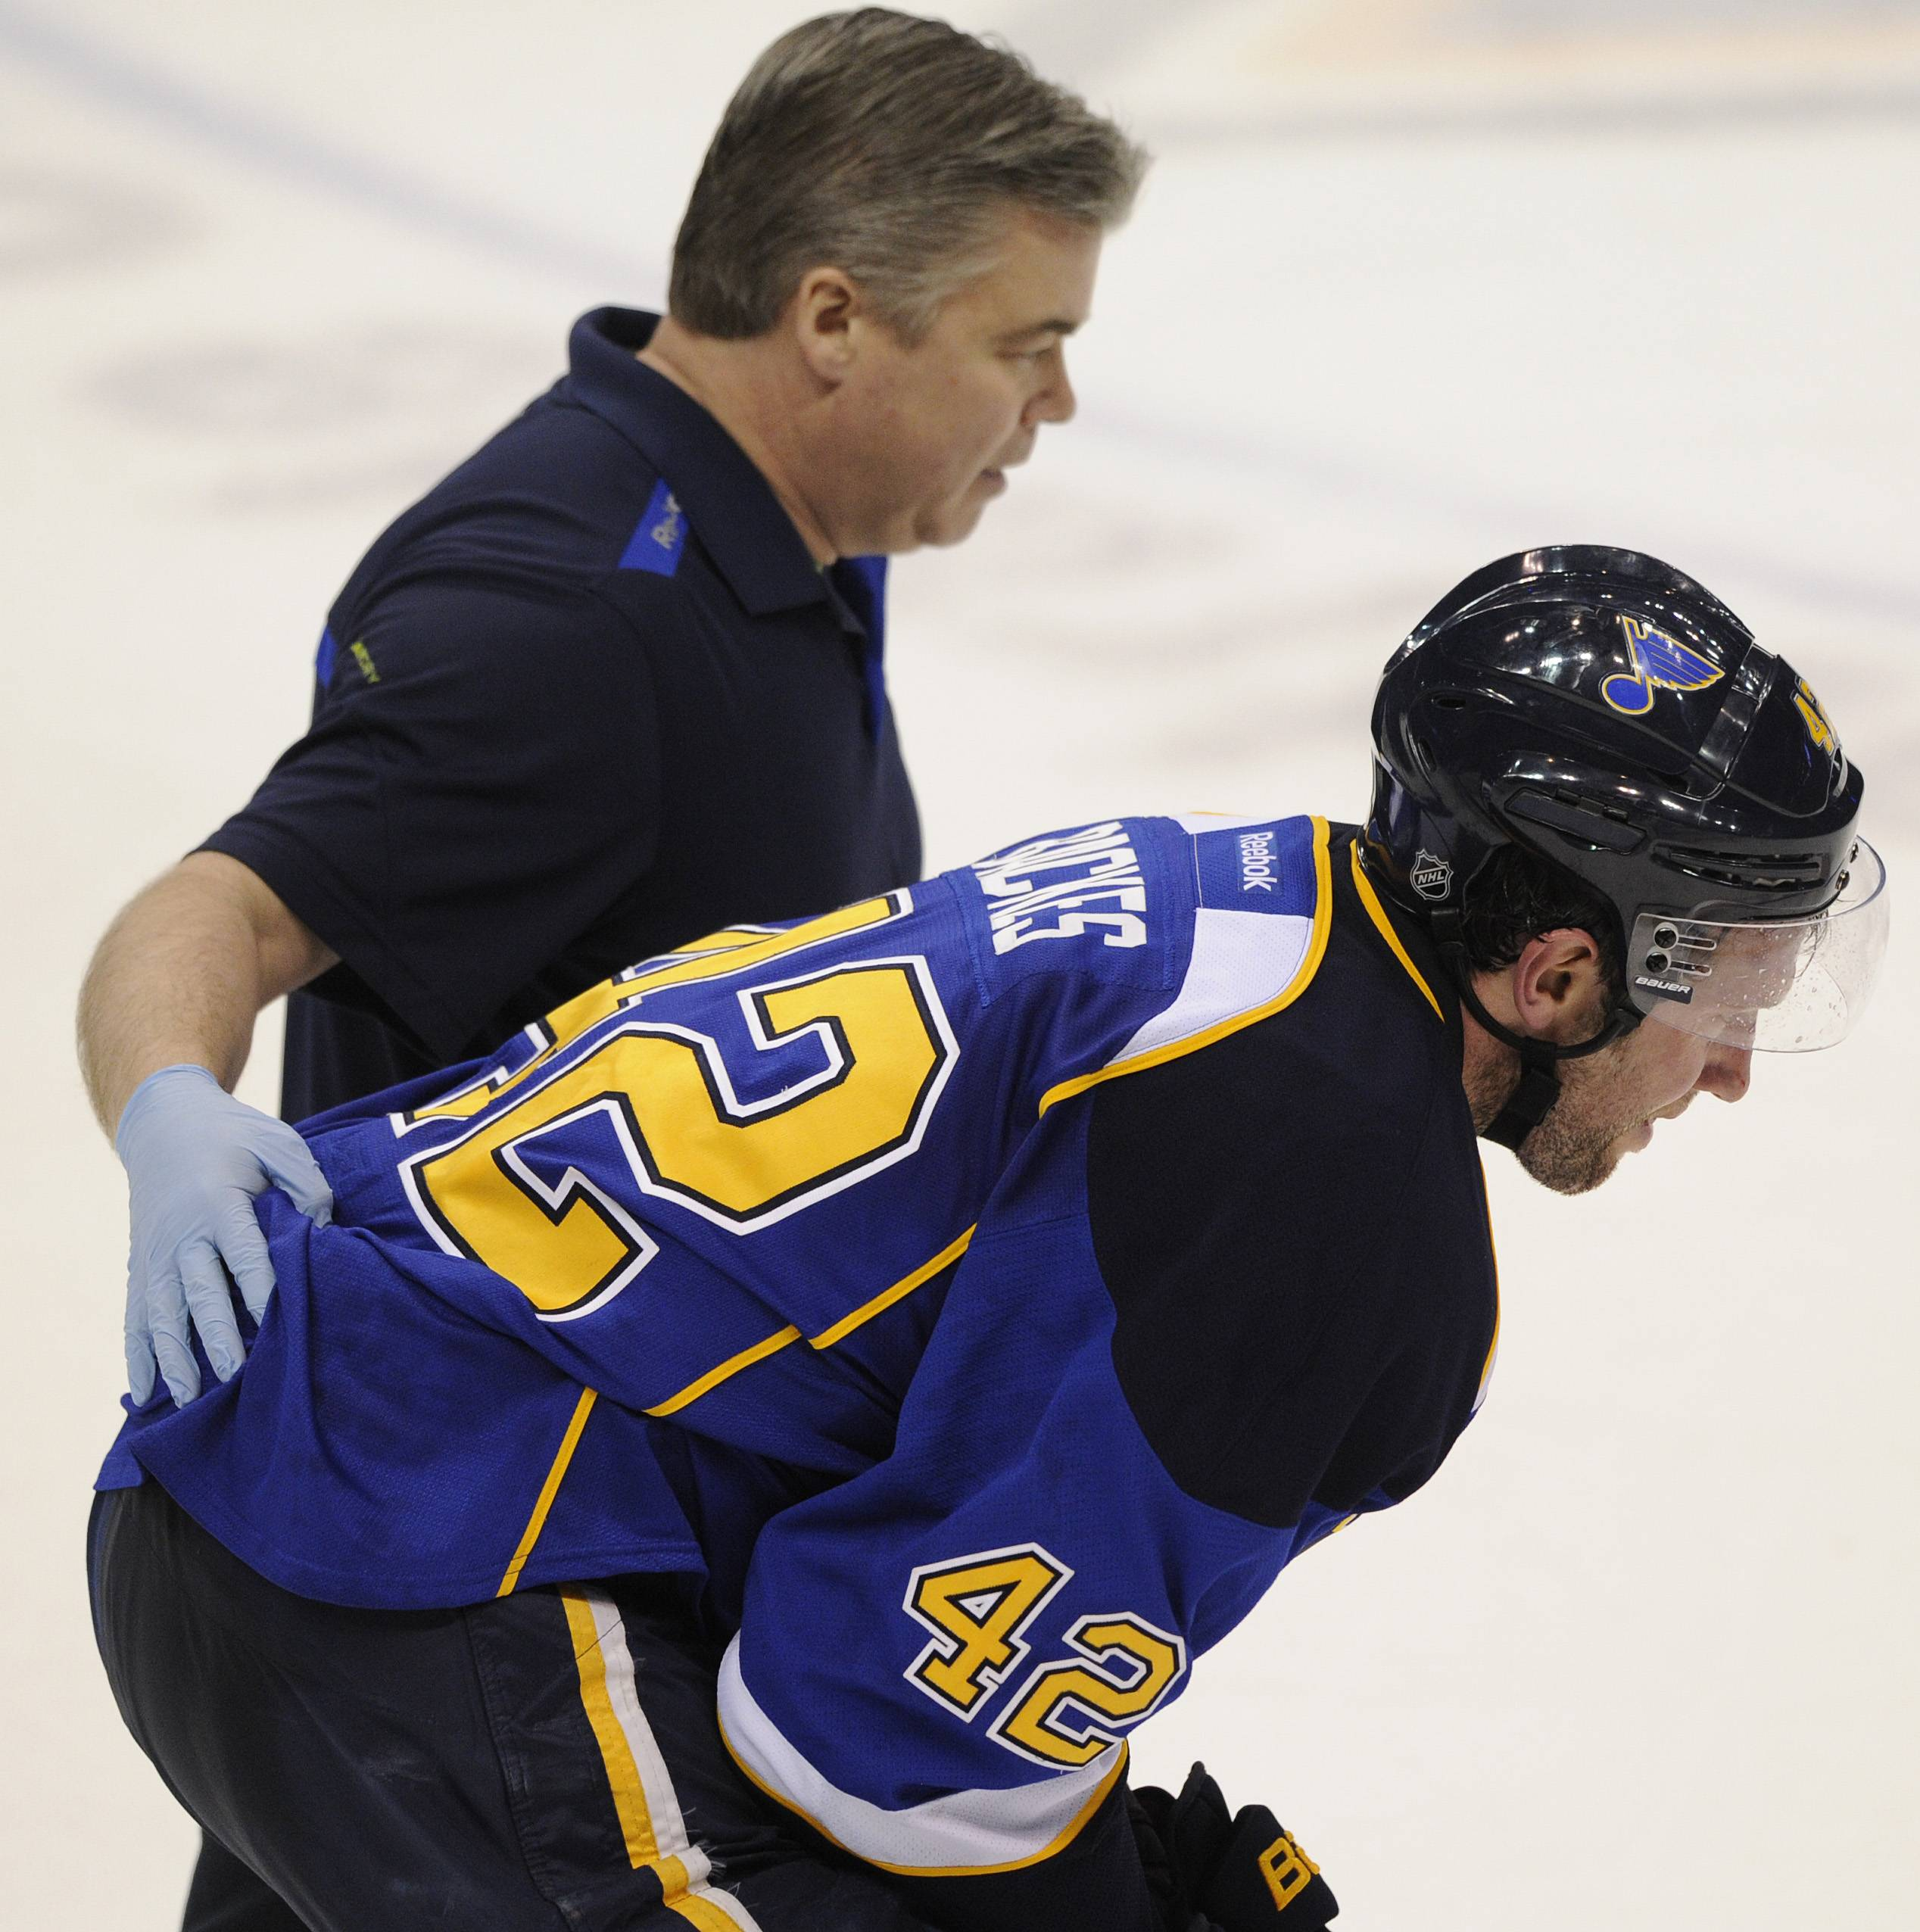 St. Louis Blues' David Backes (42) is helped off the ice by a Blues trainer against the Chicago Blackhawks during the third period in Game 2 of a first-round NHL hockey playoff series, Saturday, April 19, 2014, in St. Louis.